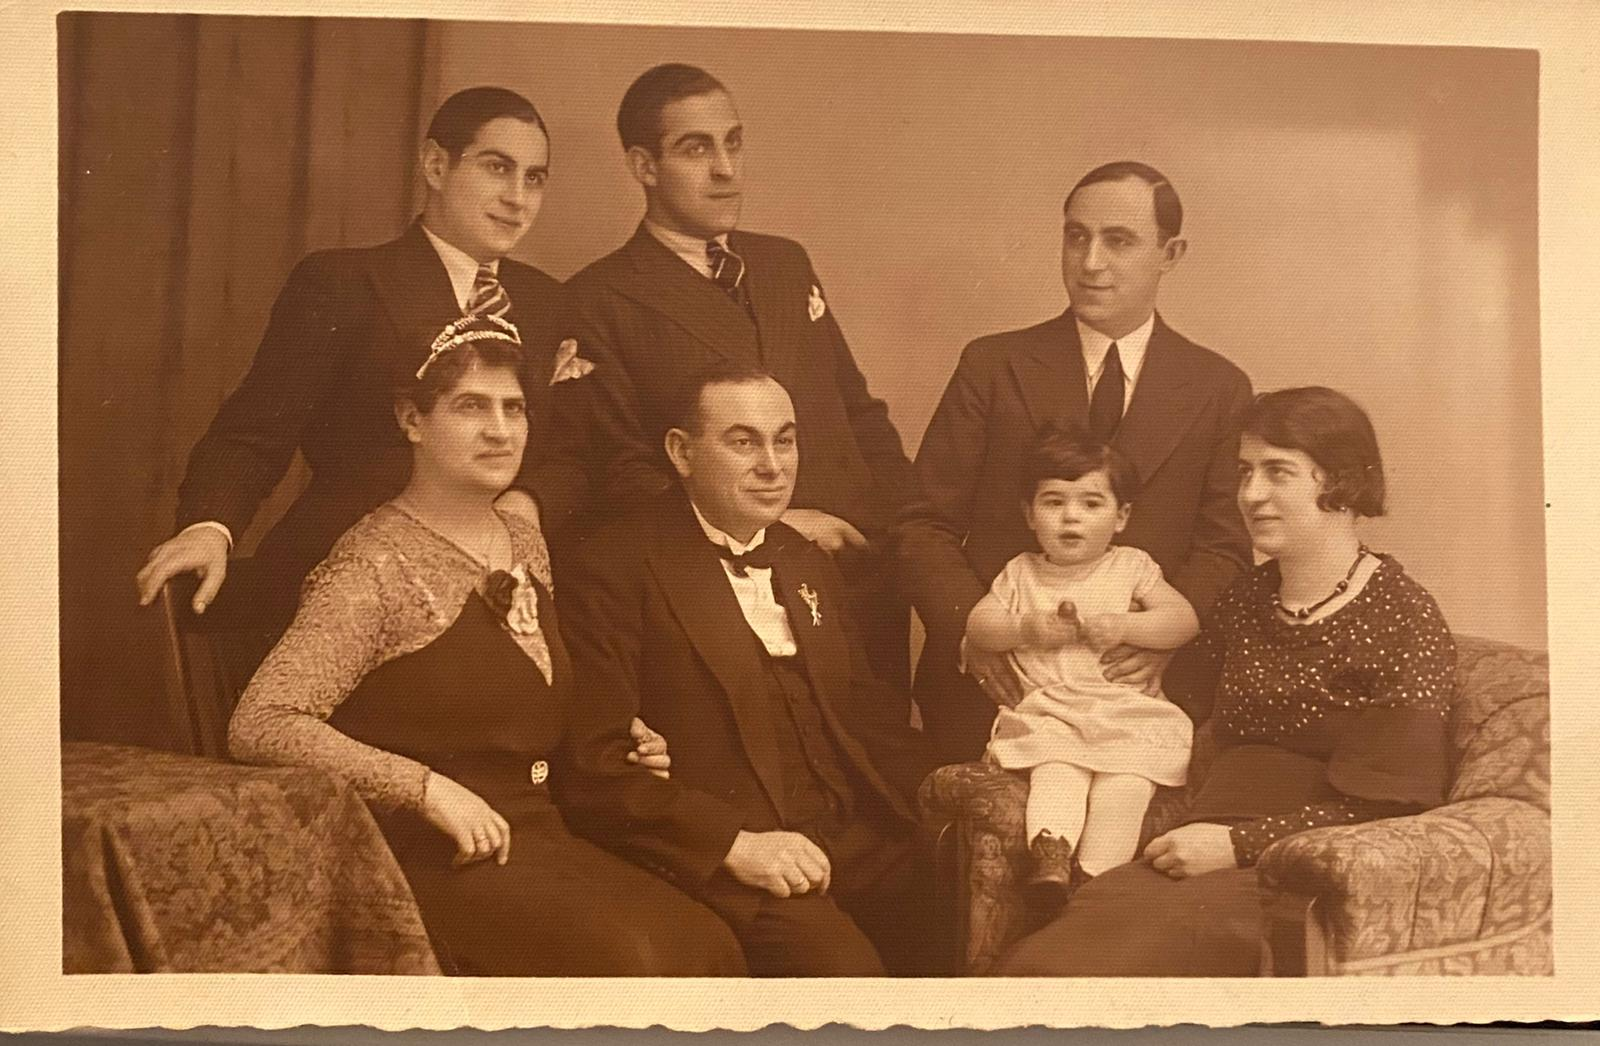 Helga Stern as an infant with her family (Photo Credit: Helga Stern)